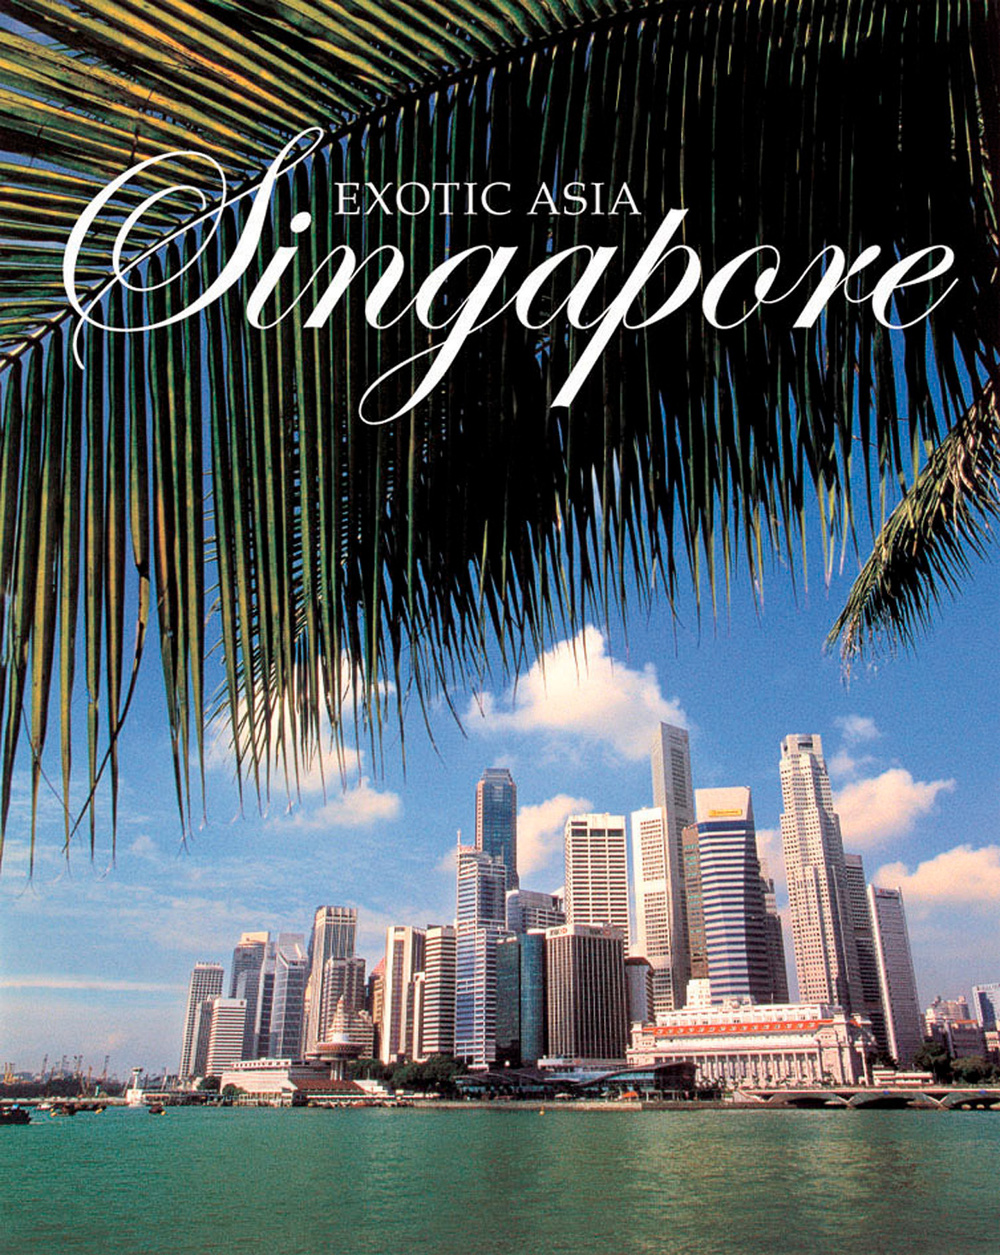 SingaporeExotic-Asia-2x3inches-300dpi.jpg